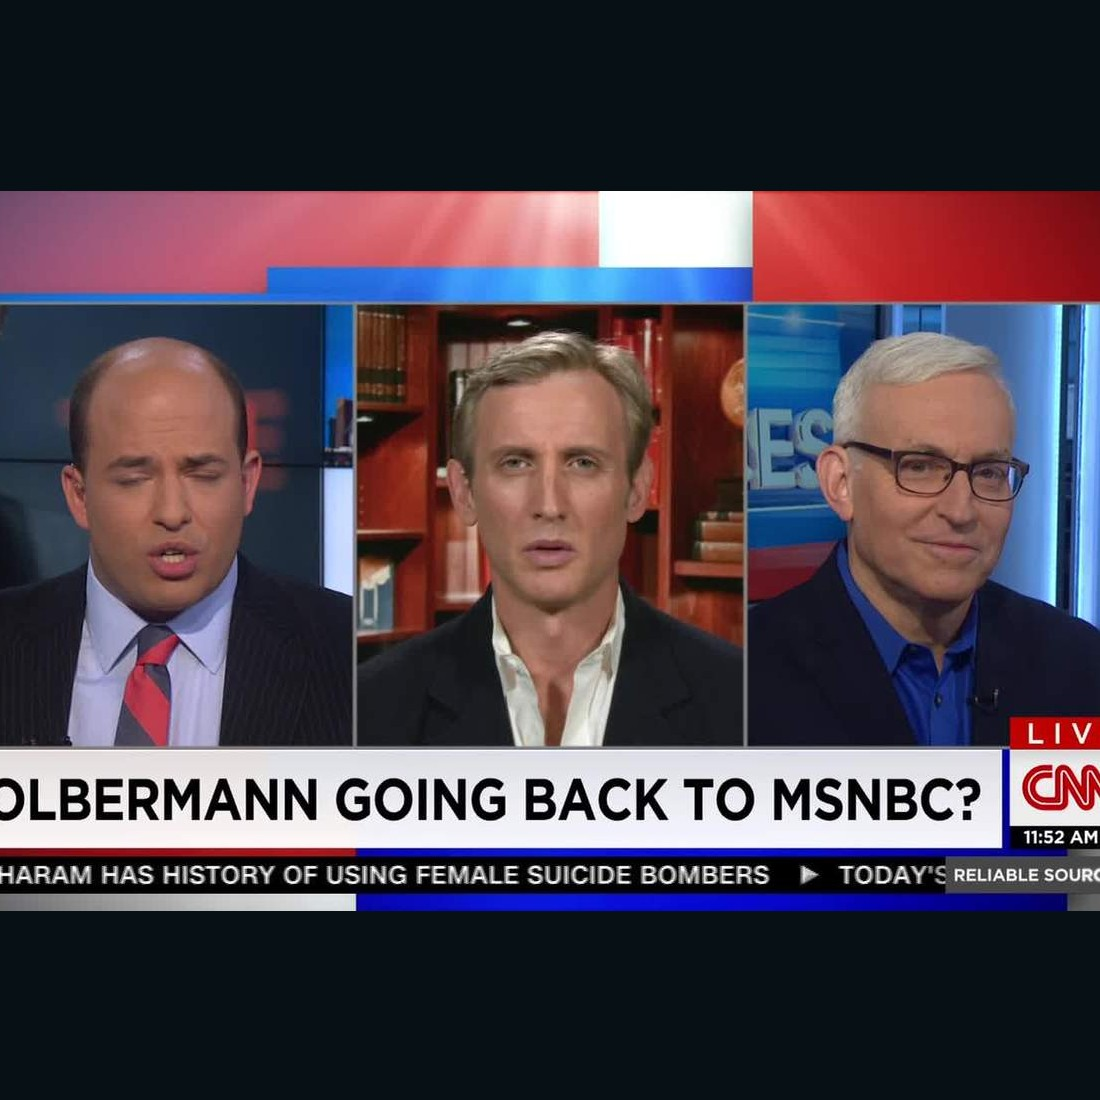 Will more hard news coverage help MSNBC? Dan Abrams, former